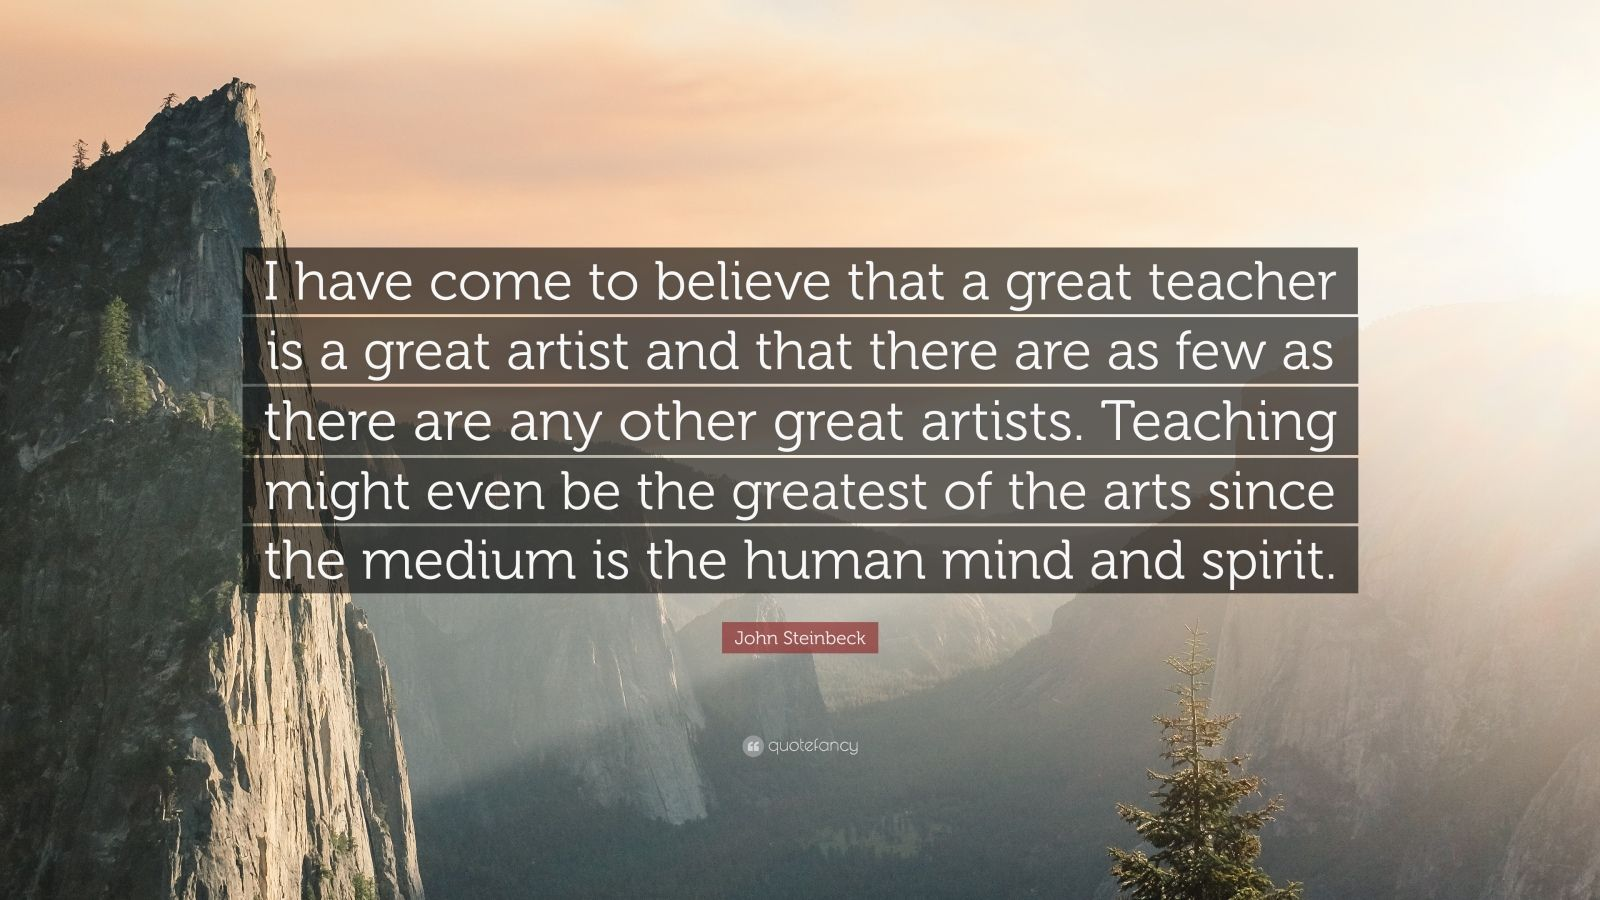 """John Steinbeck Quote: """"I have come to believe that a great teacher is a great artist and that there are as few as there are any other great artists. Teaching might even be the greatest of the arts since the medium is the human mind and spirit."""""""